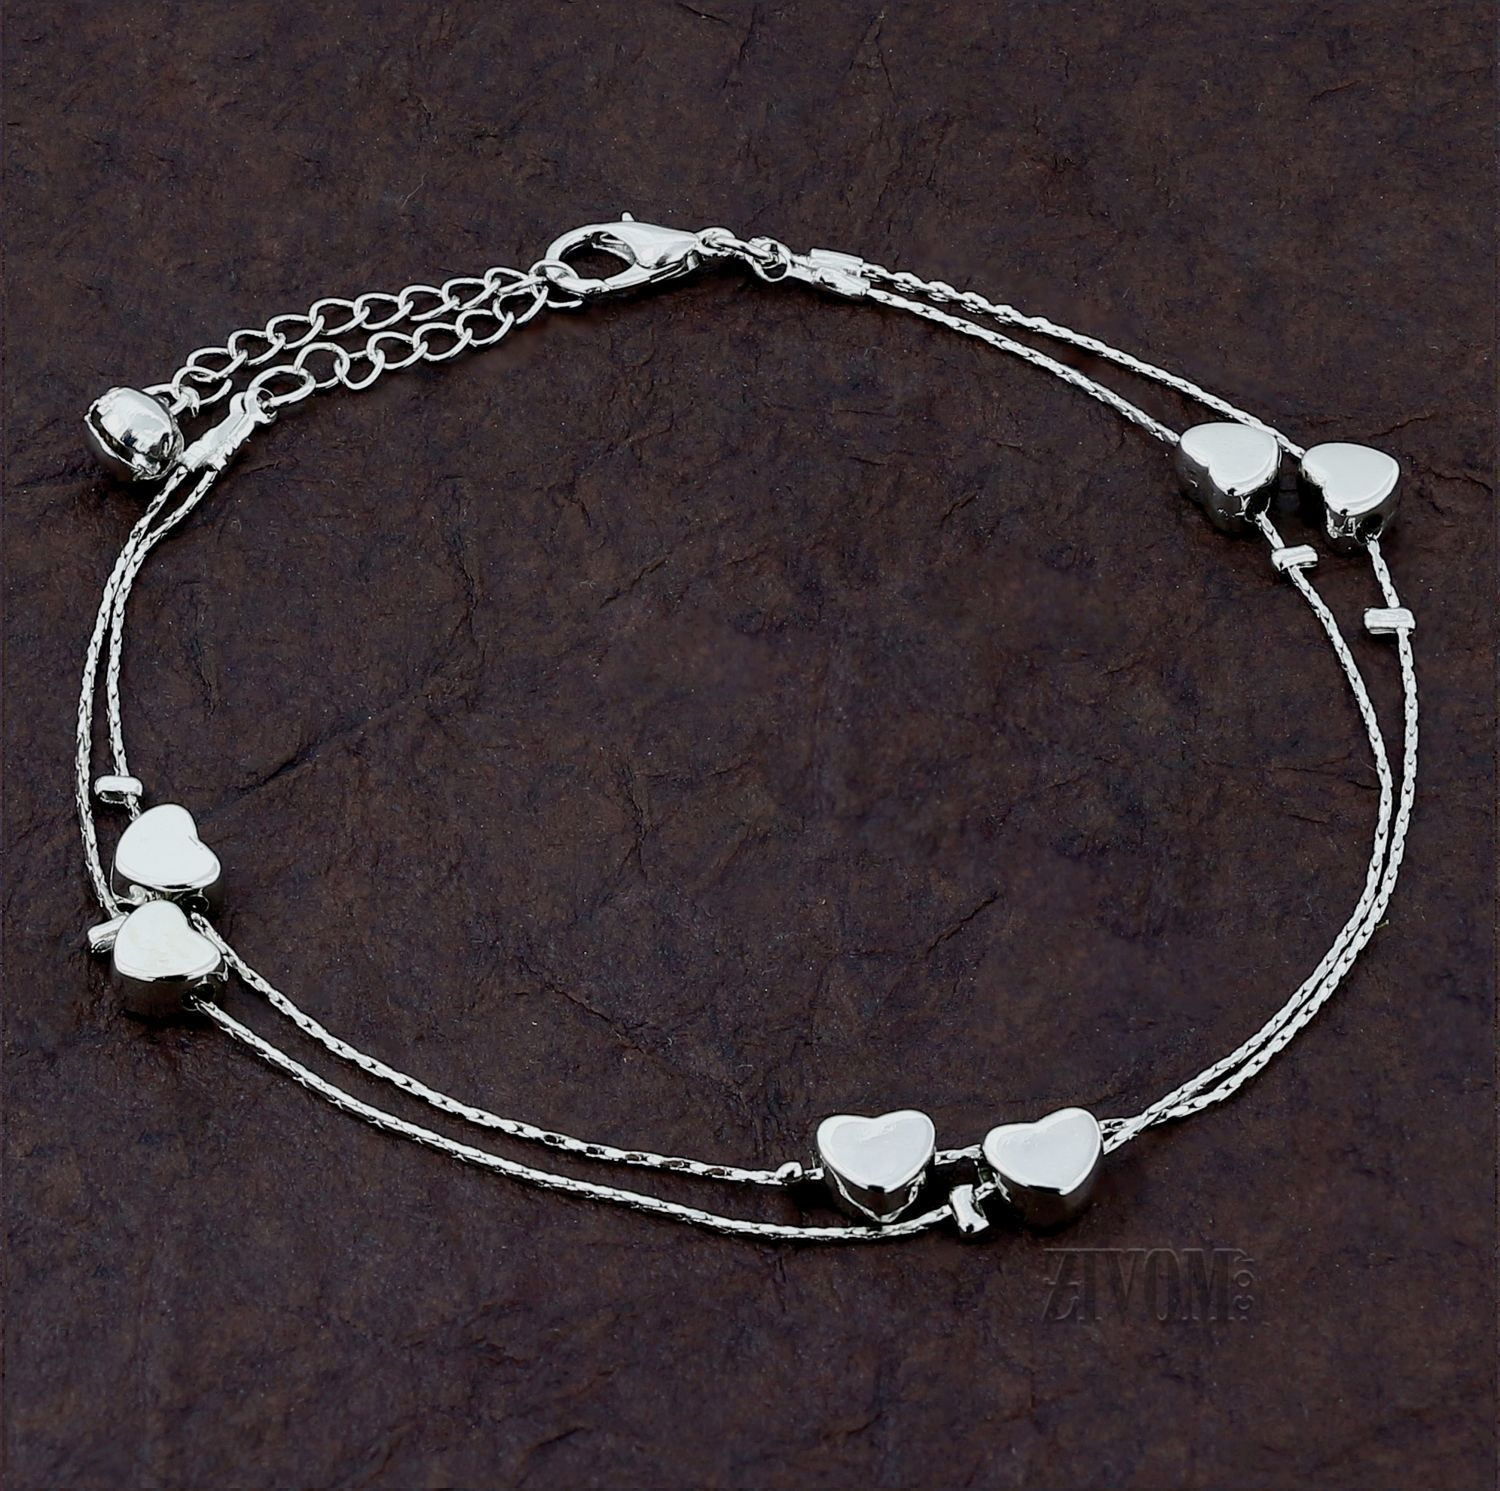 Zivom® Hearts Stylish Indo Western Dainty Delicate Charms Single Leg Anklet Payal for Women Girls